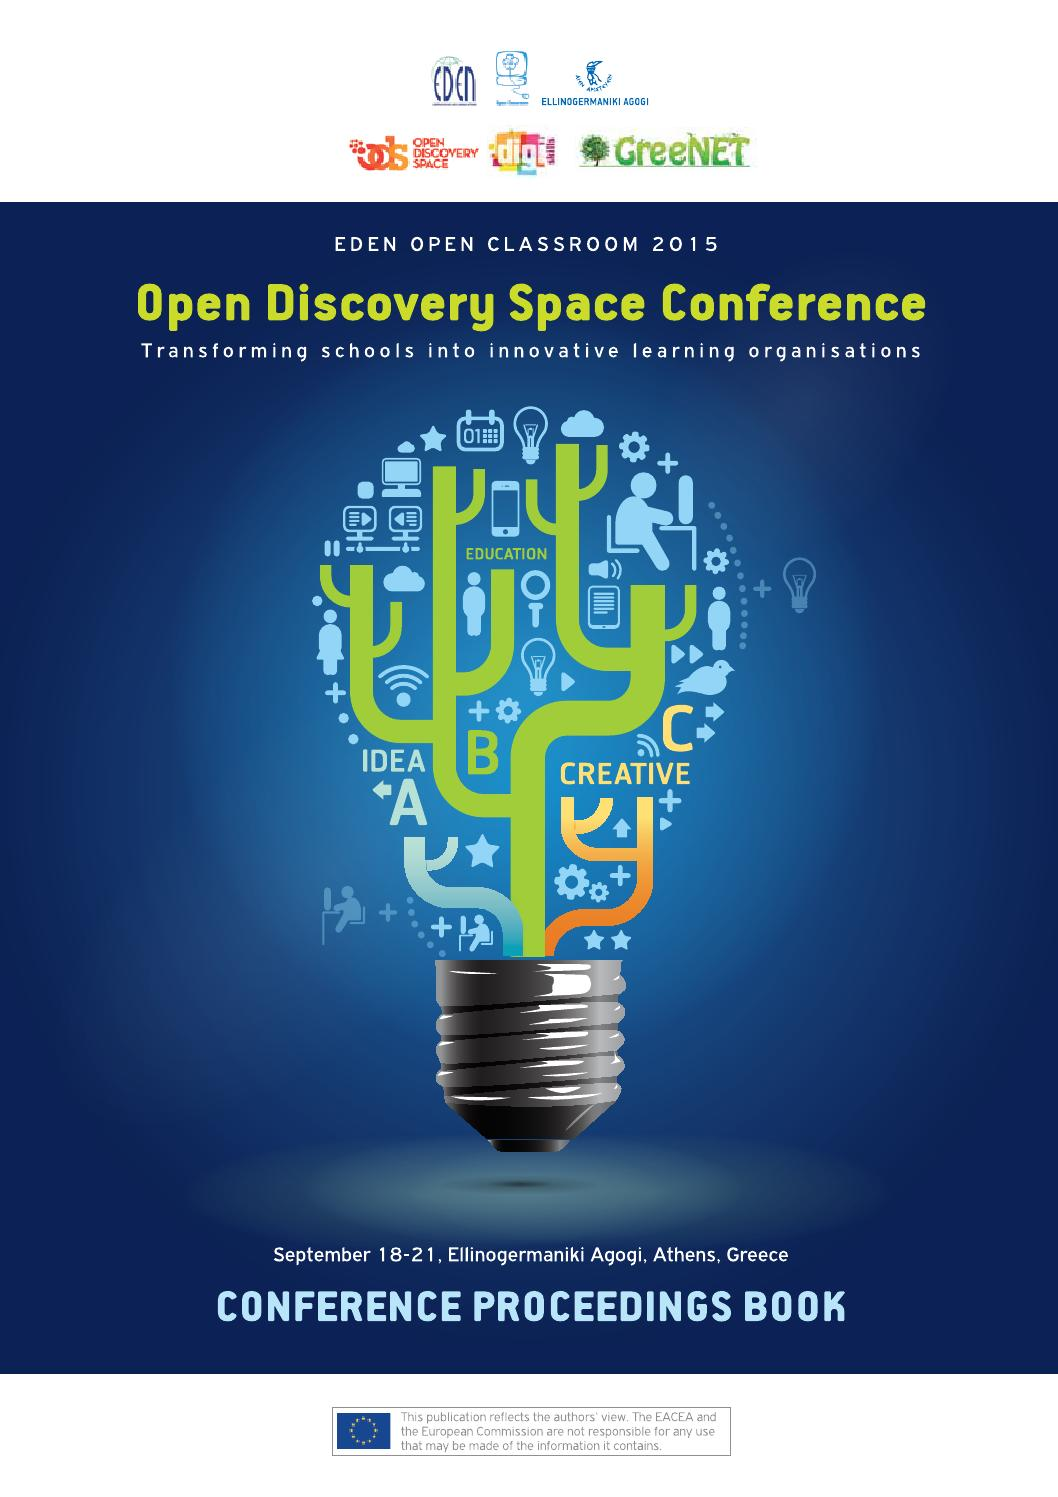 EDEN Open Classroom Conference 2015 - Open Discovery Space by EDEN ...